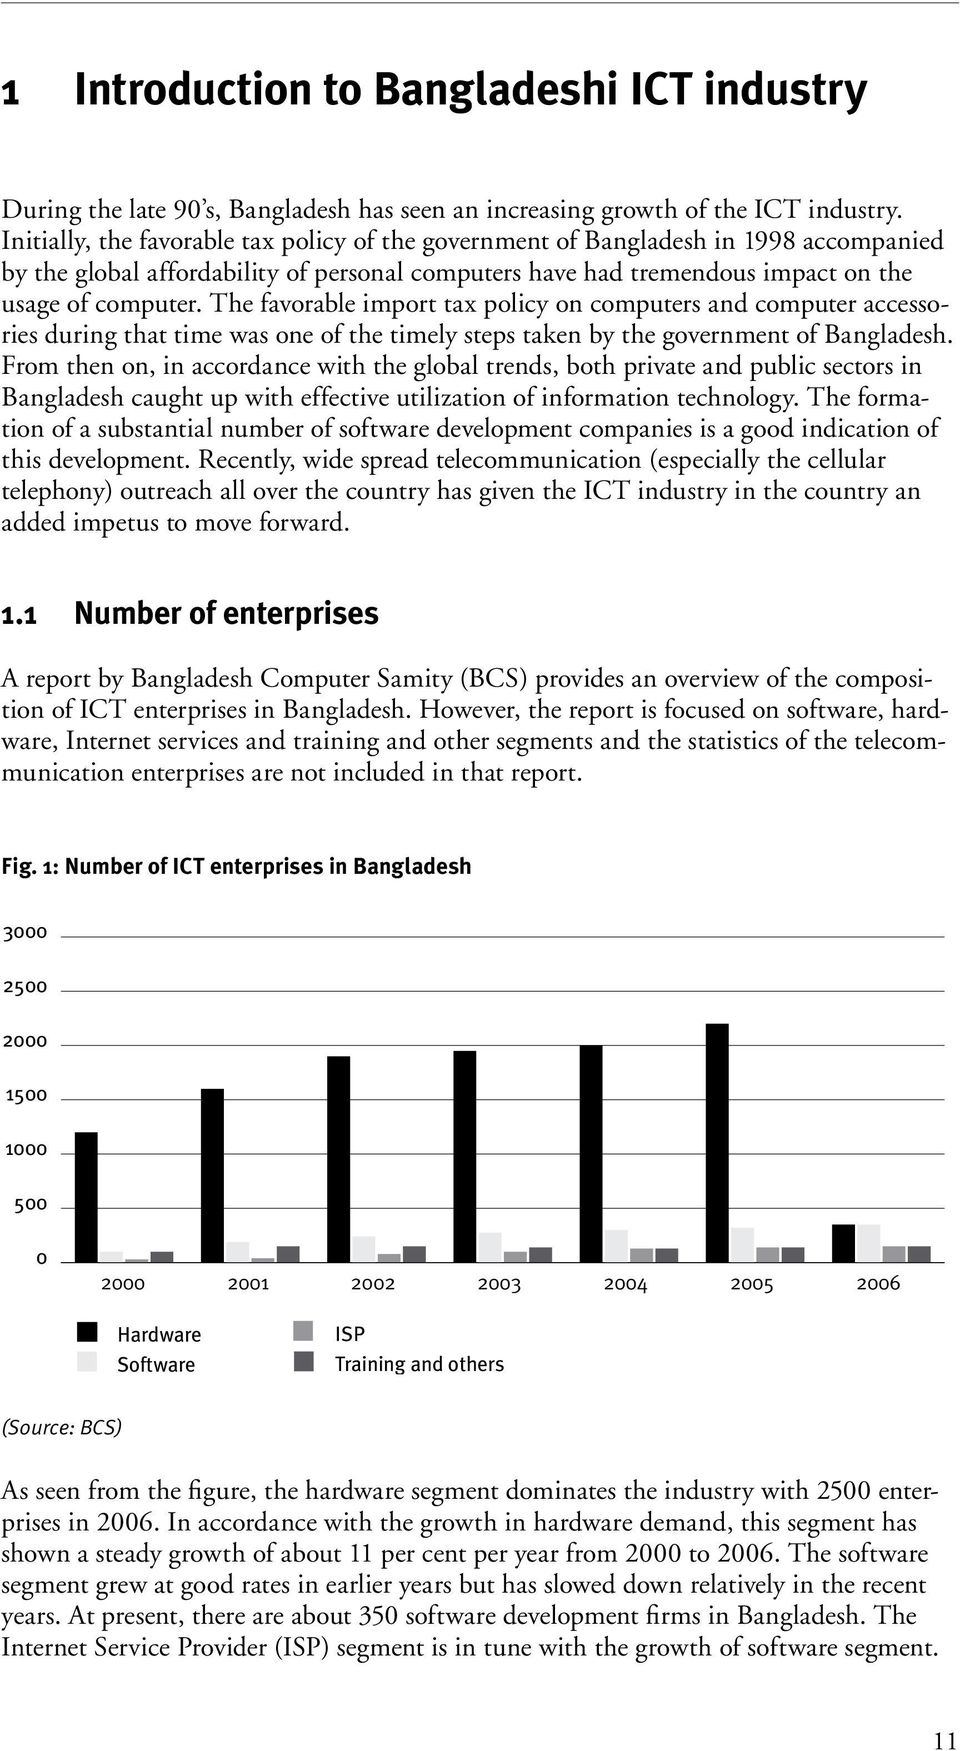 The favorable import tax policy on computers and computer accessories during that time was one of the timely steps taken by the government of Bangladesh.